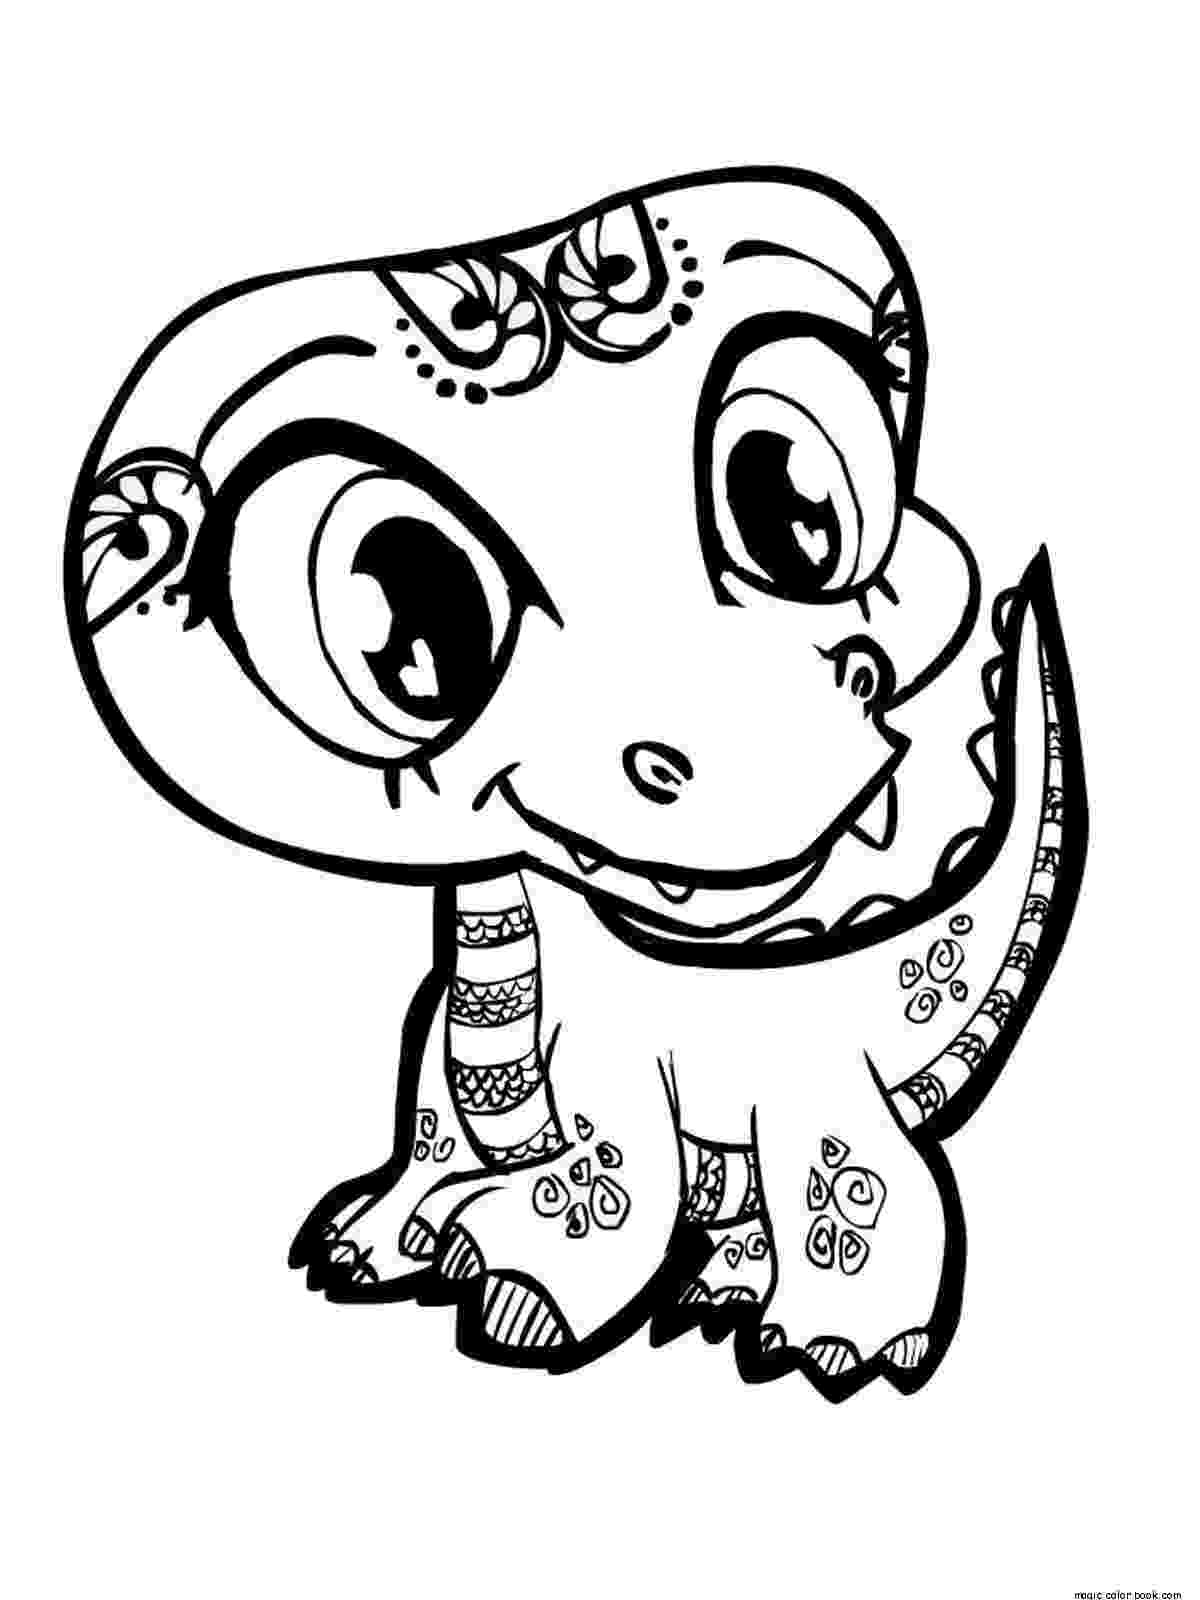 free printable coloring pages littlest pet shop littlest pet shop coloring pages for free 15 coloring pet coloring littlest free printable pages shop